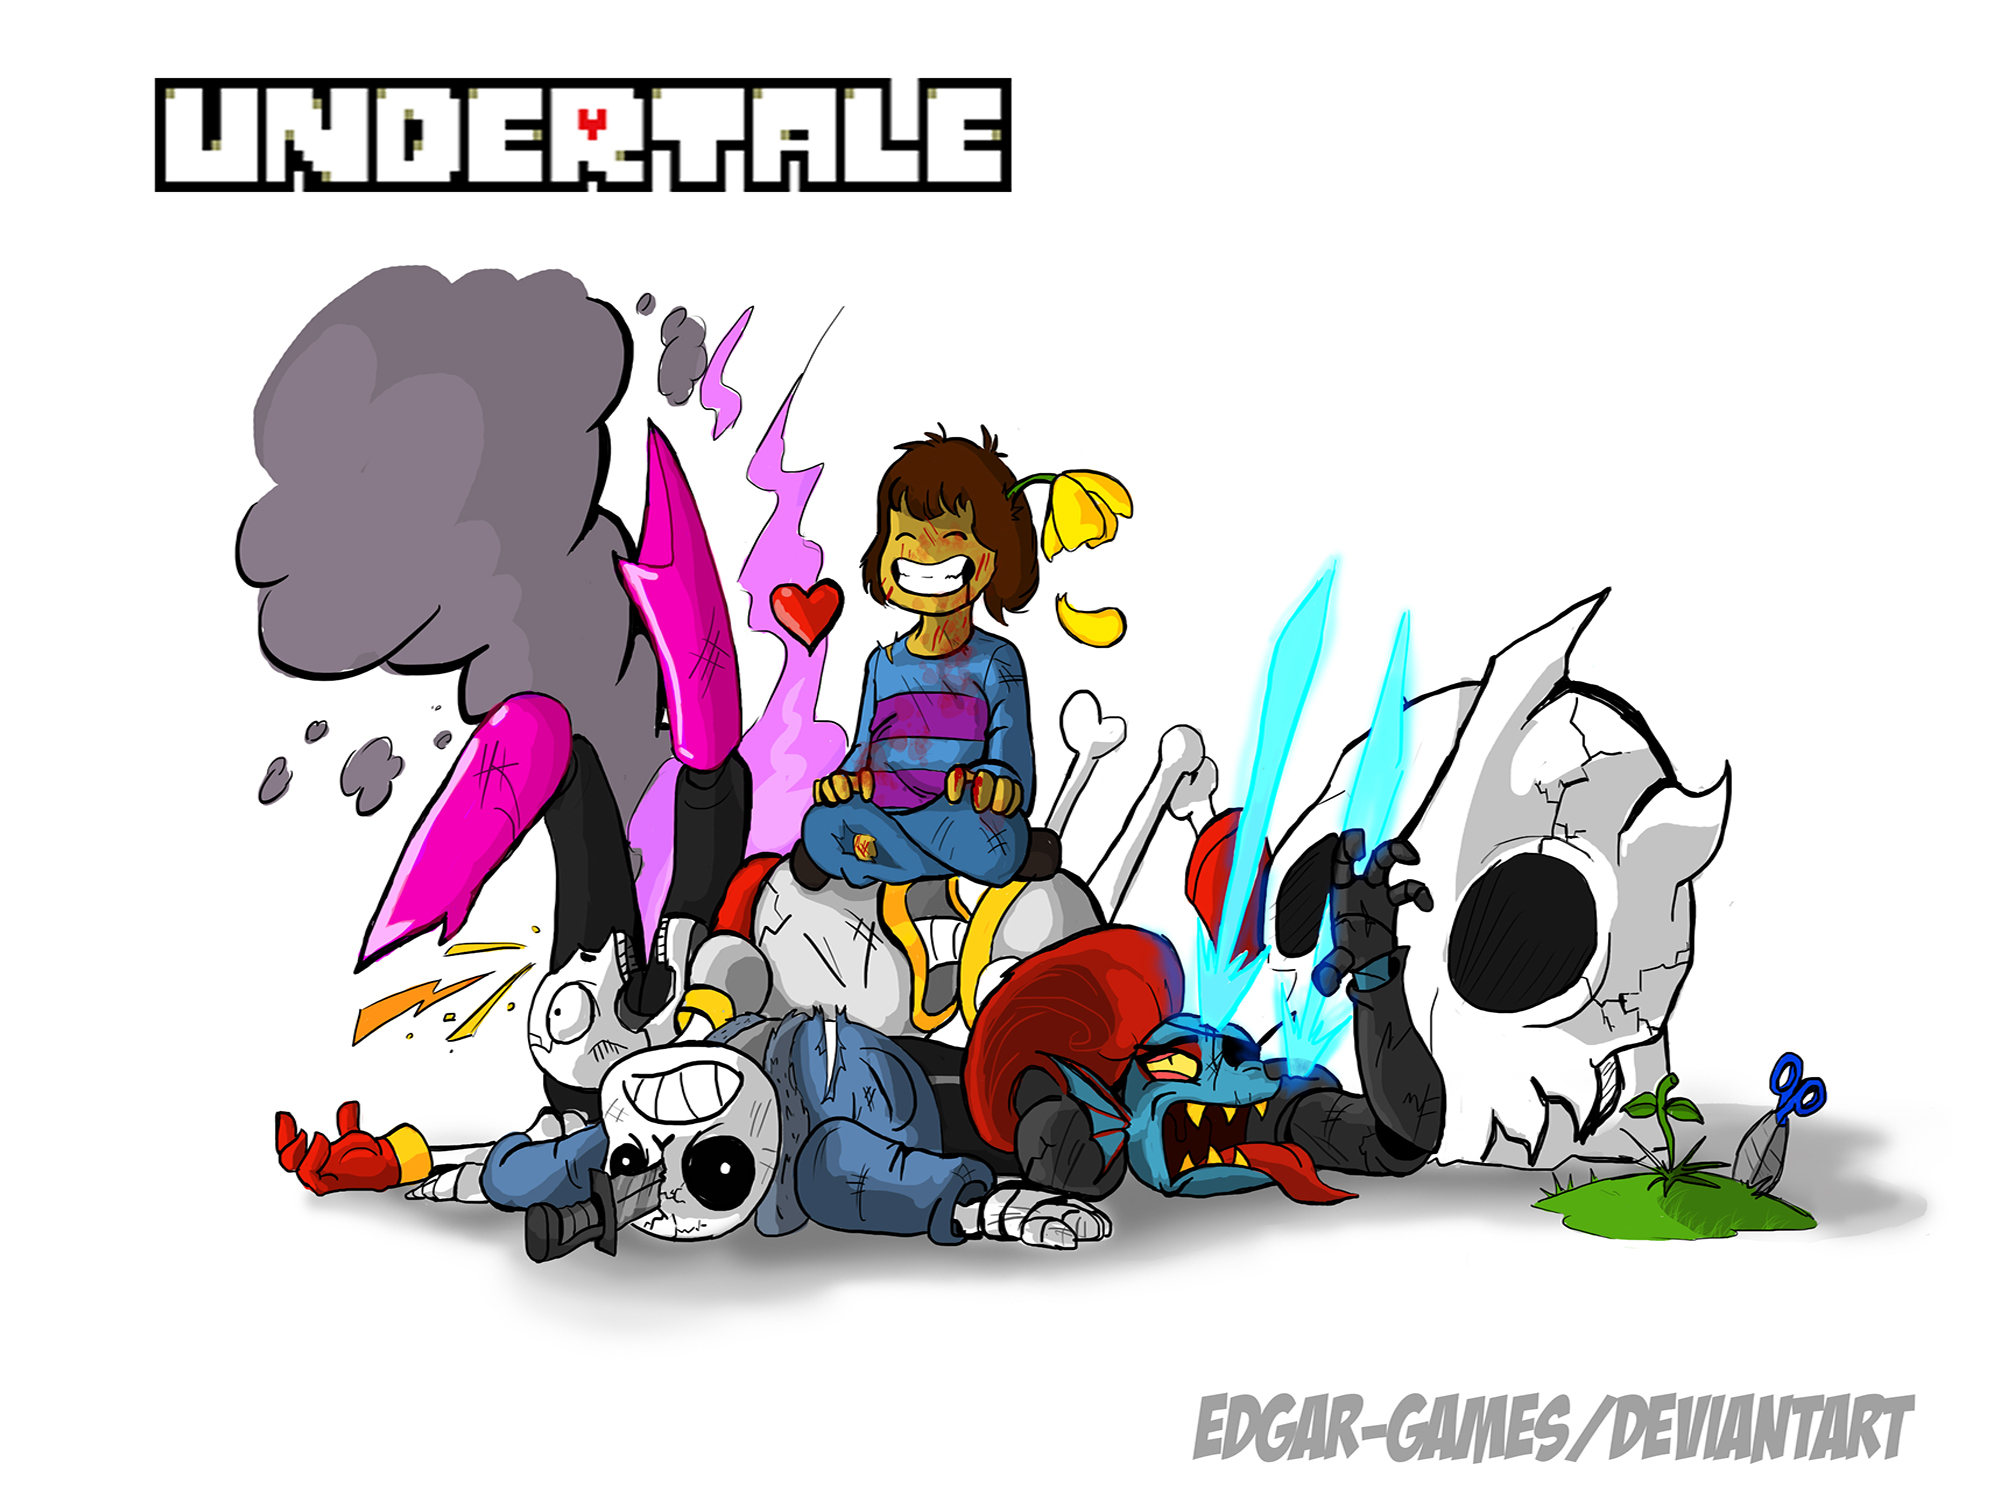 UNDERTALE The path of Genocide by Edgar-Games